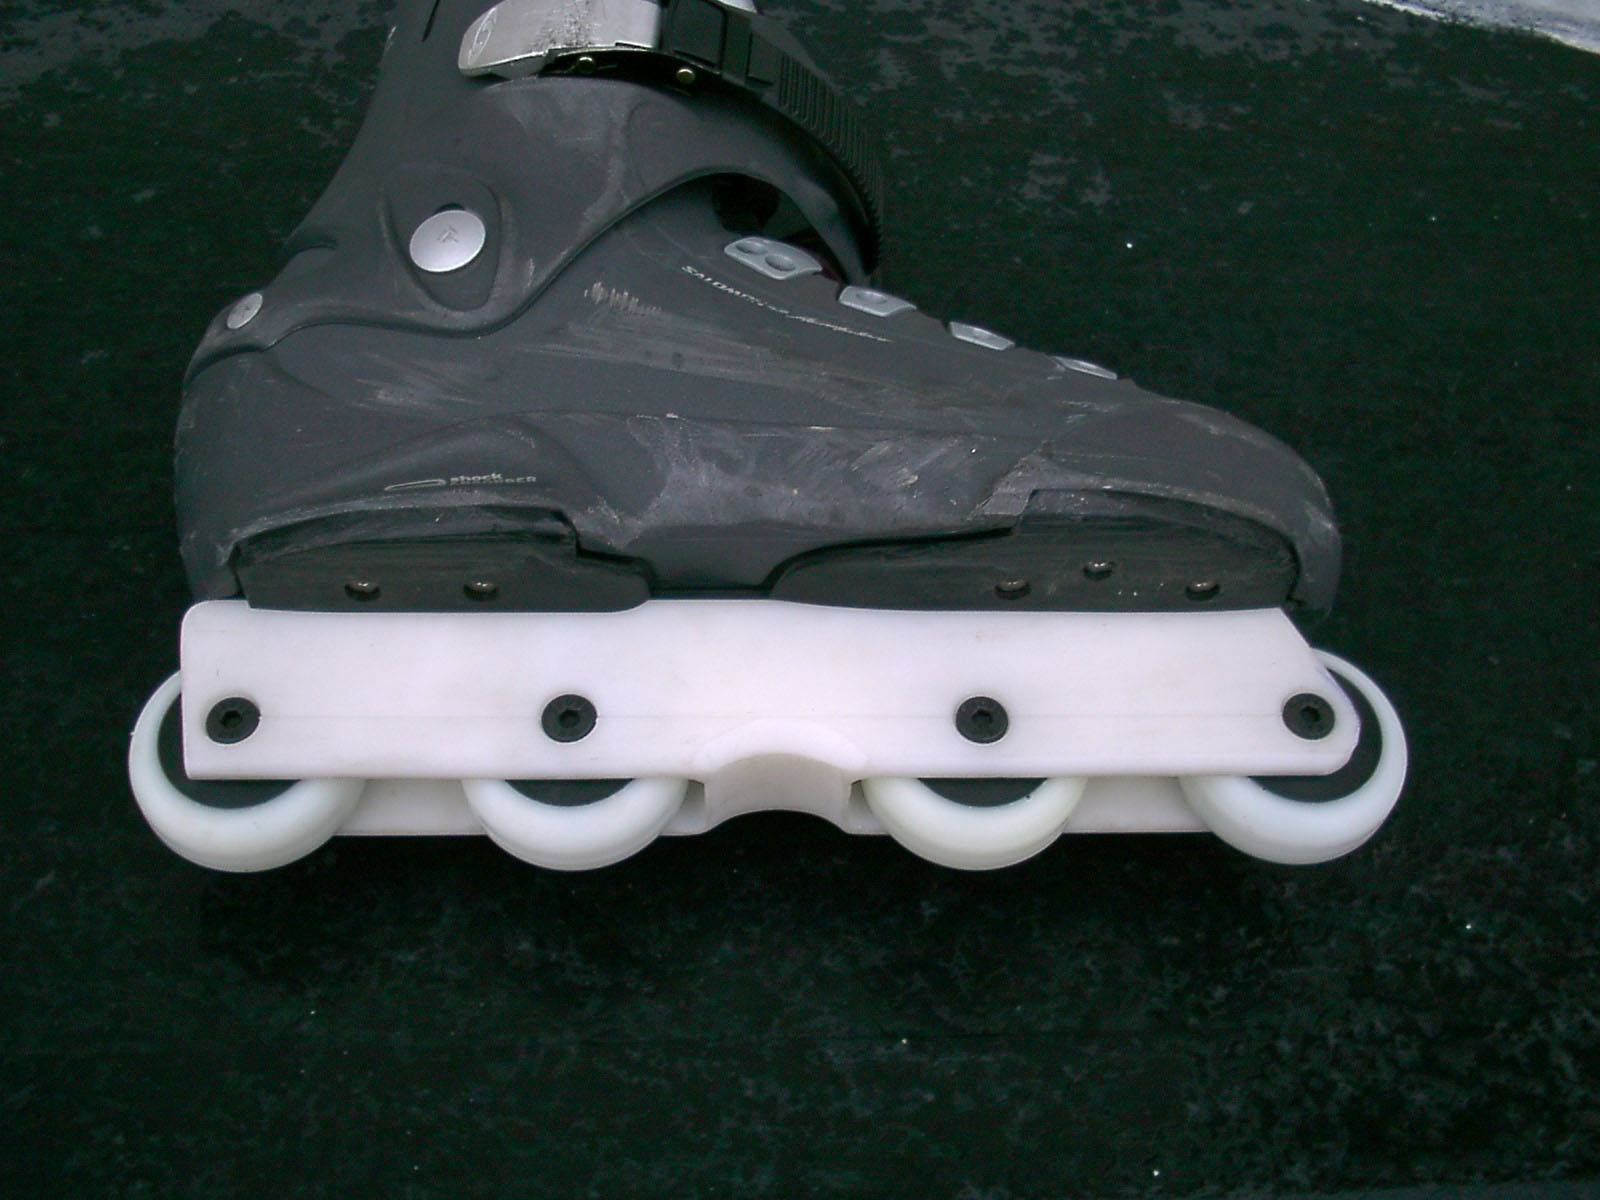 This is a prototype Salomon skate they gave us for testing the UFS frames. This was the first time we'd ever seen a complete UFS skate.